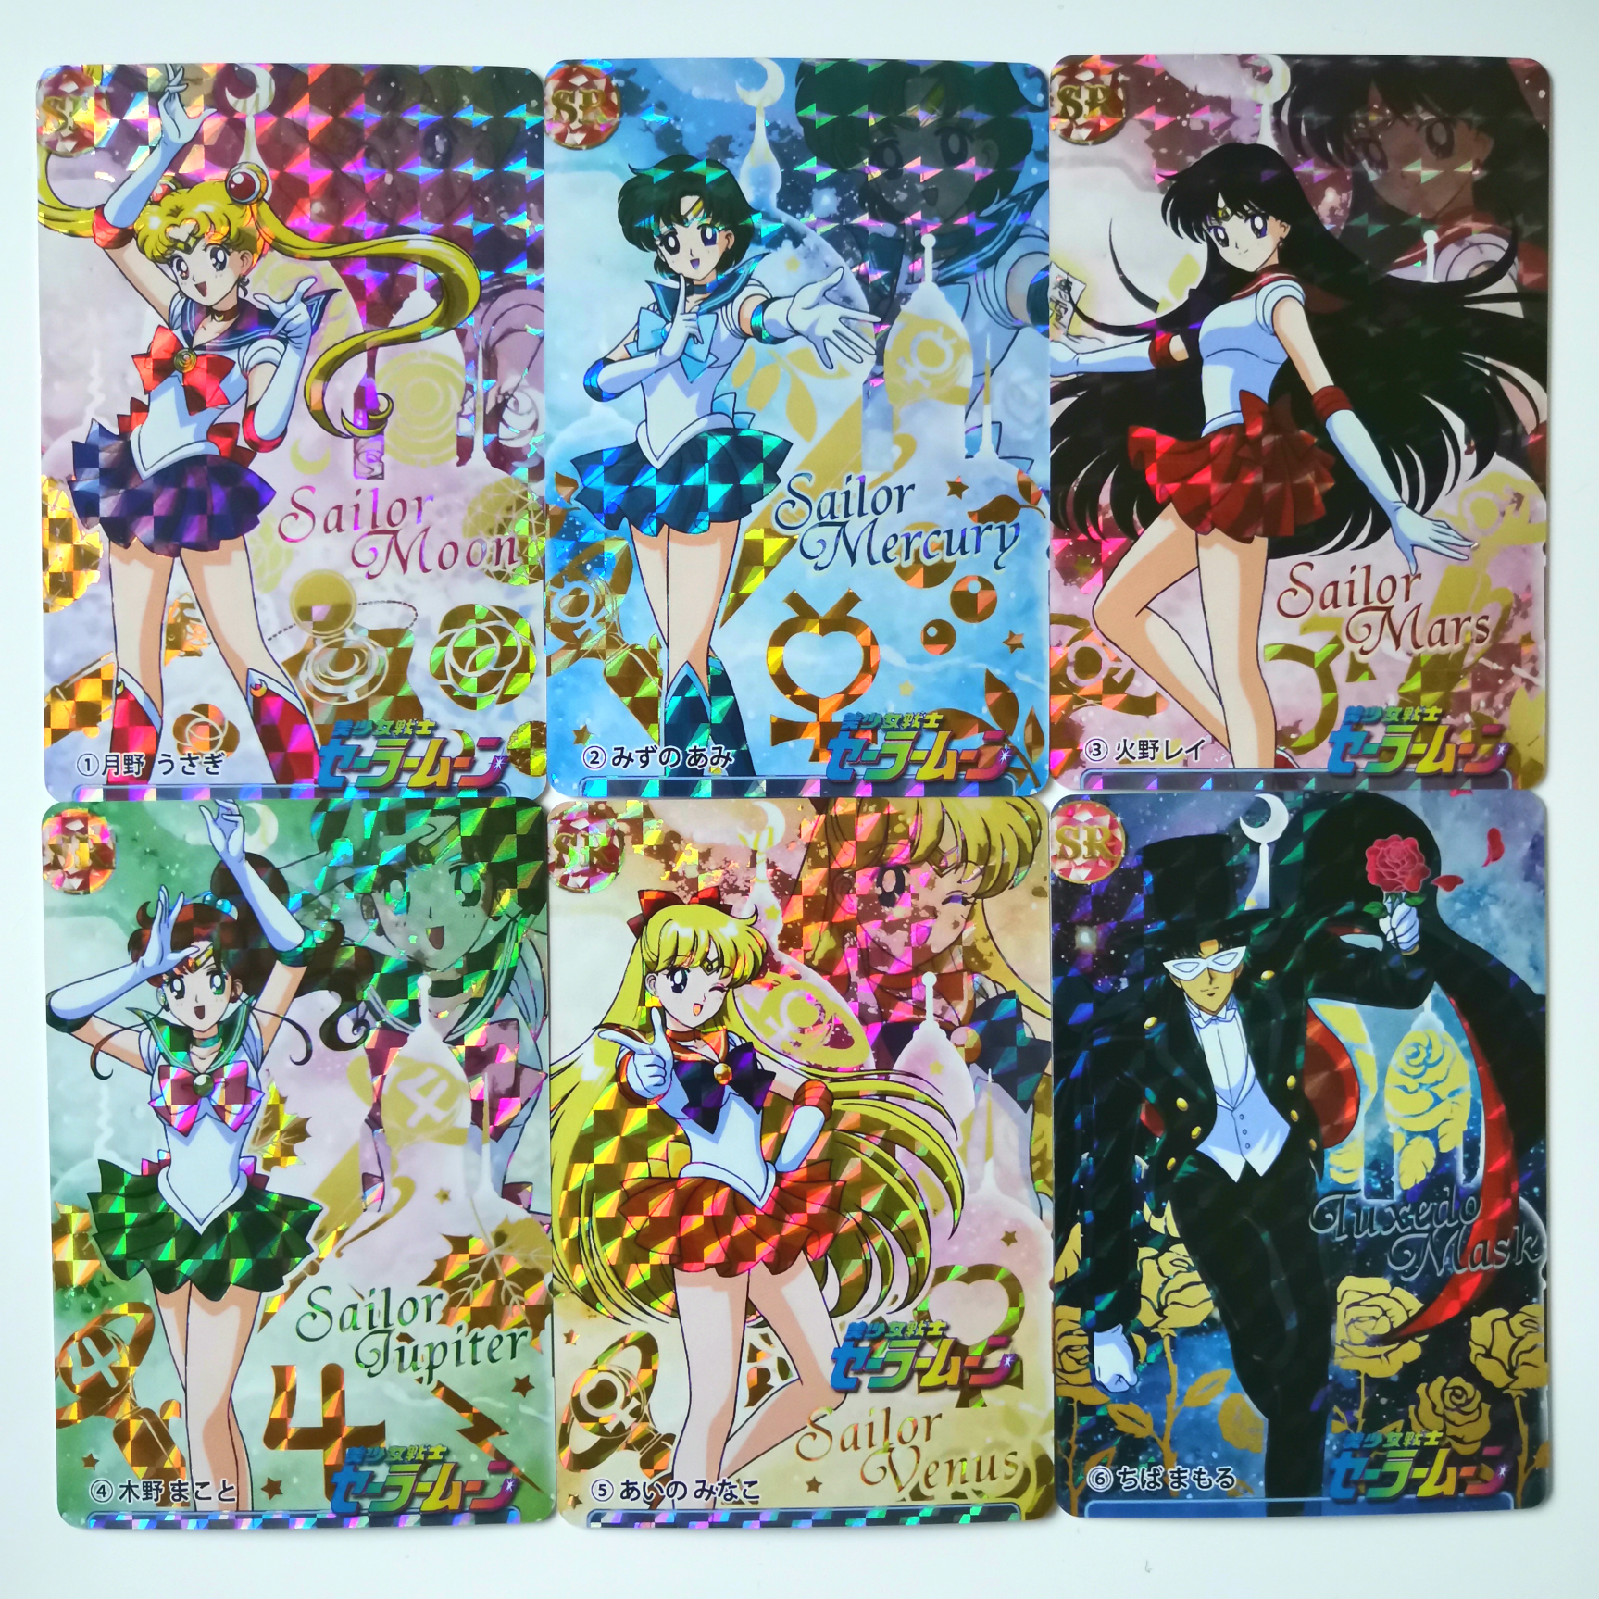 9pcs/set Sailor Moon Toys Hobbies Hobby Collectibles Game Collection Anime Cards